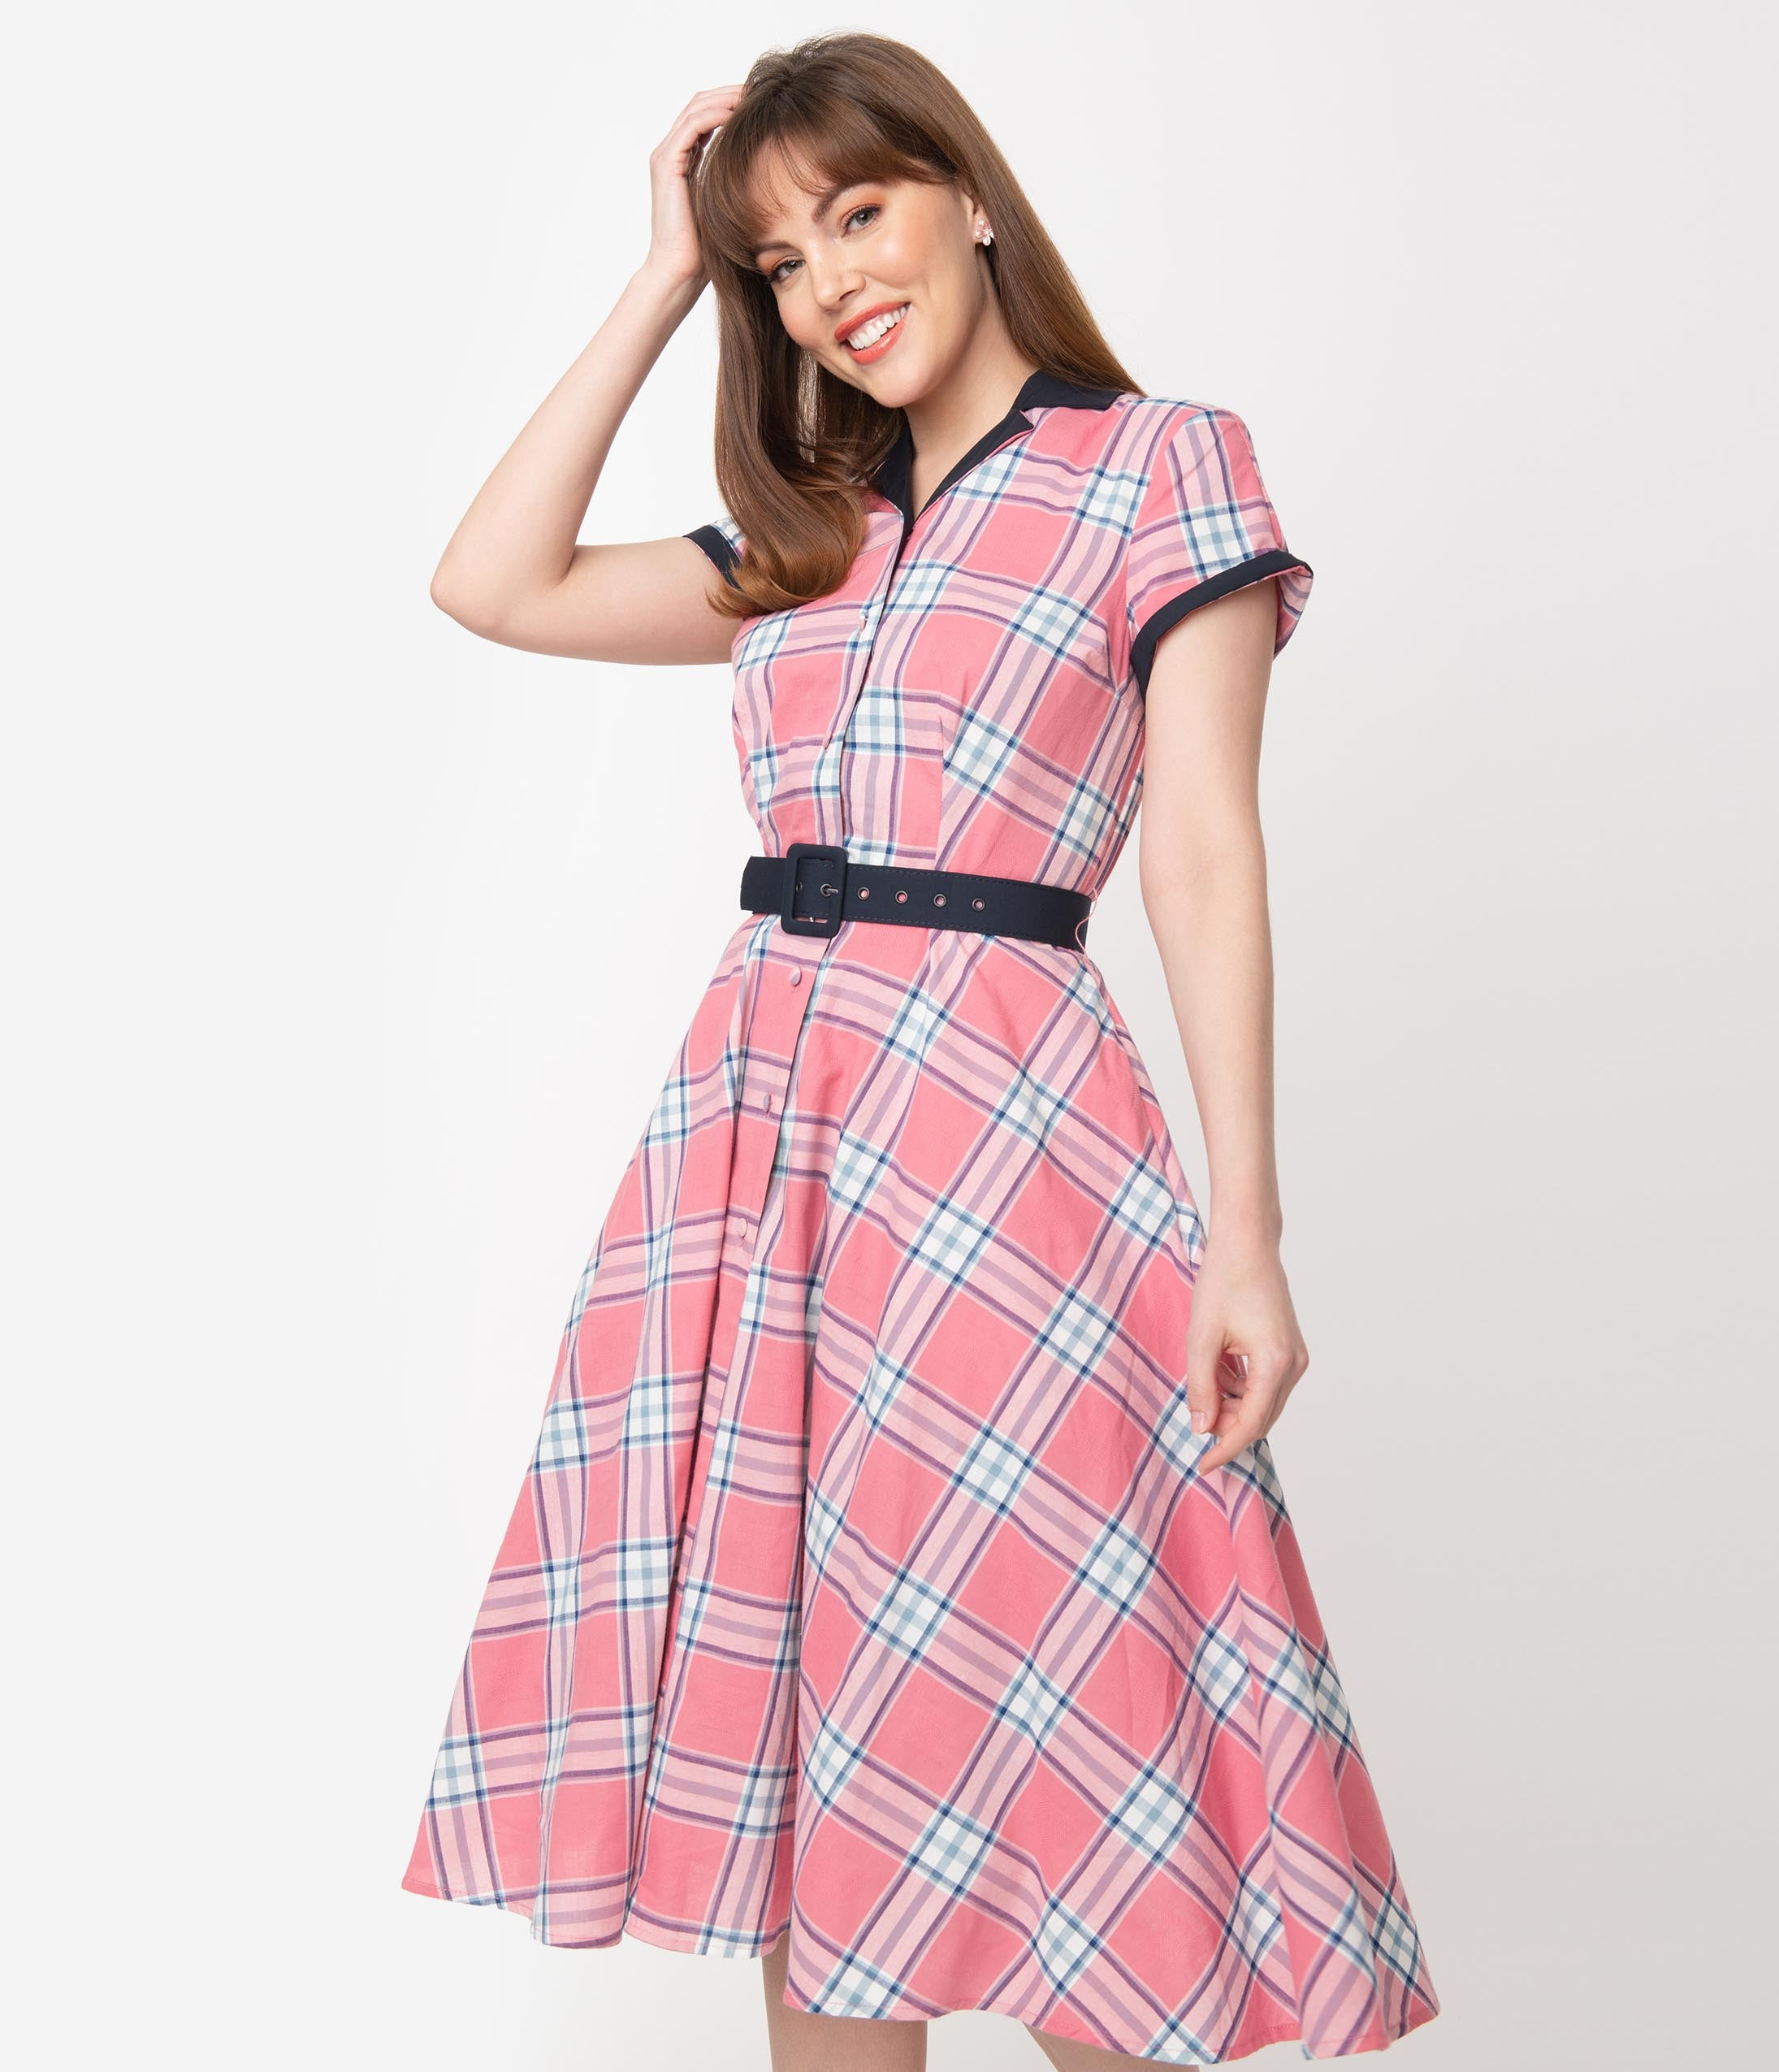 1950s Dresses, 50s Dresses | 1950s Style Dresses Unique Vintage 1950S Style Light Pink Plaid Alexis Swing Dress $88.00 AT vintagedancer.com